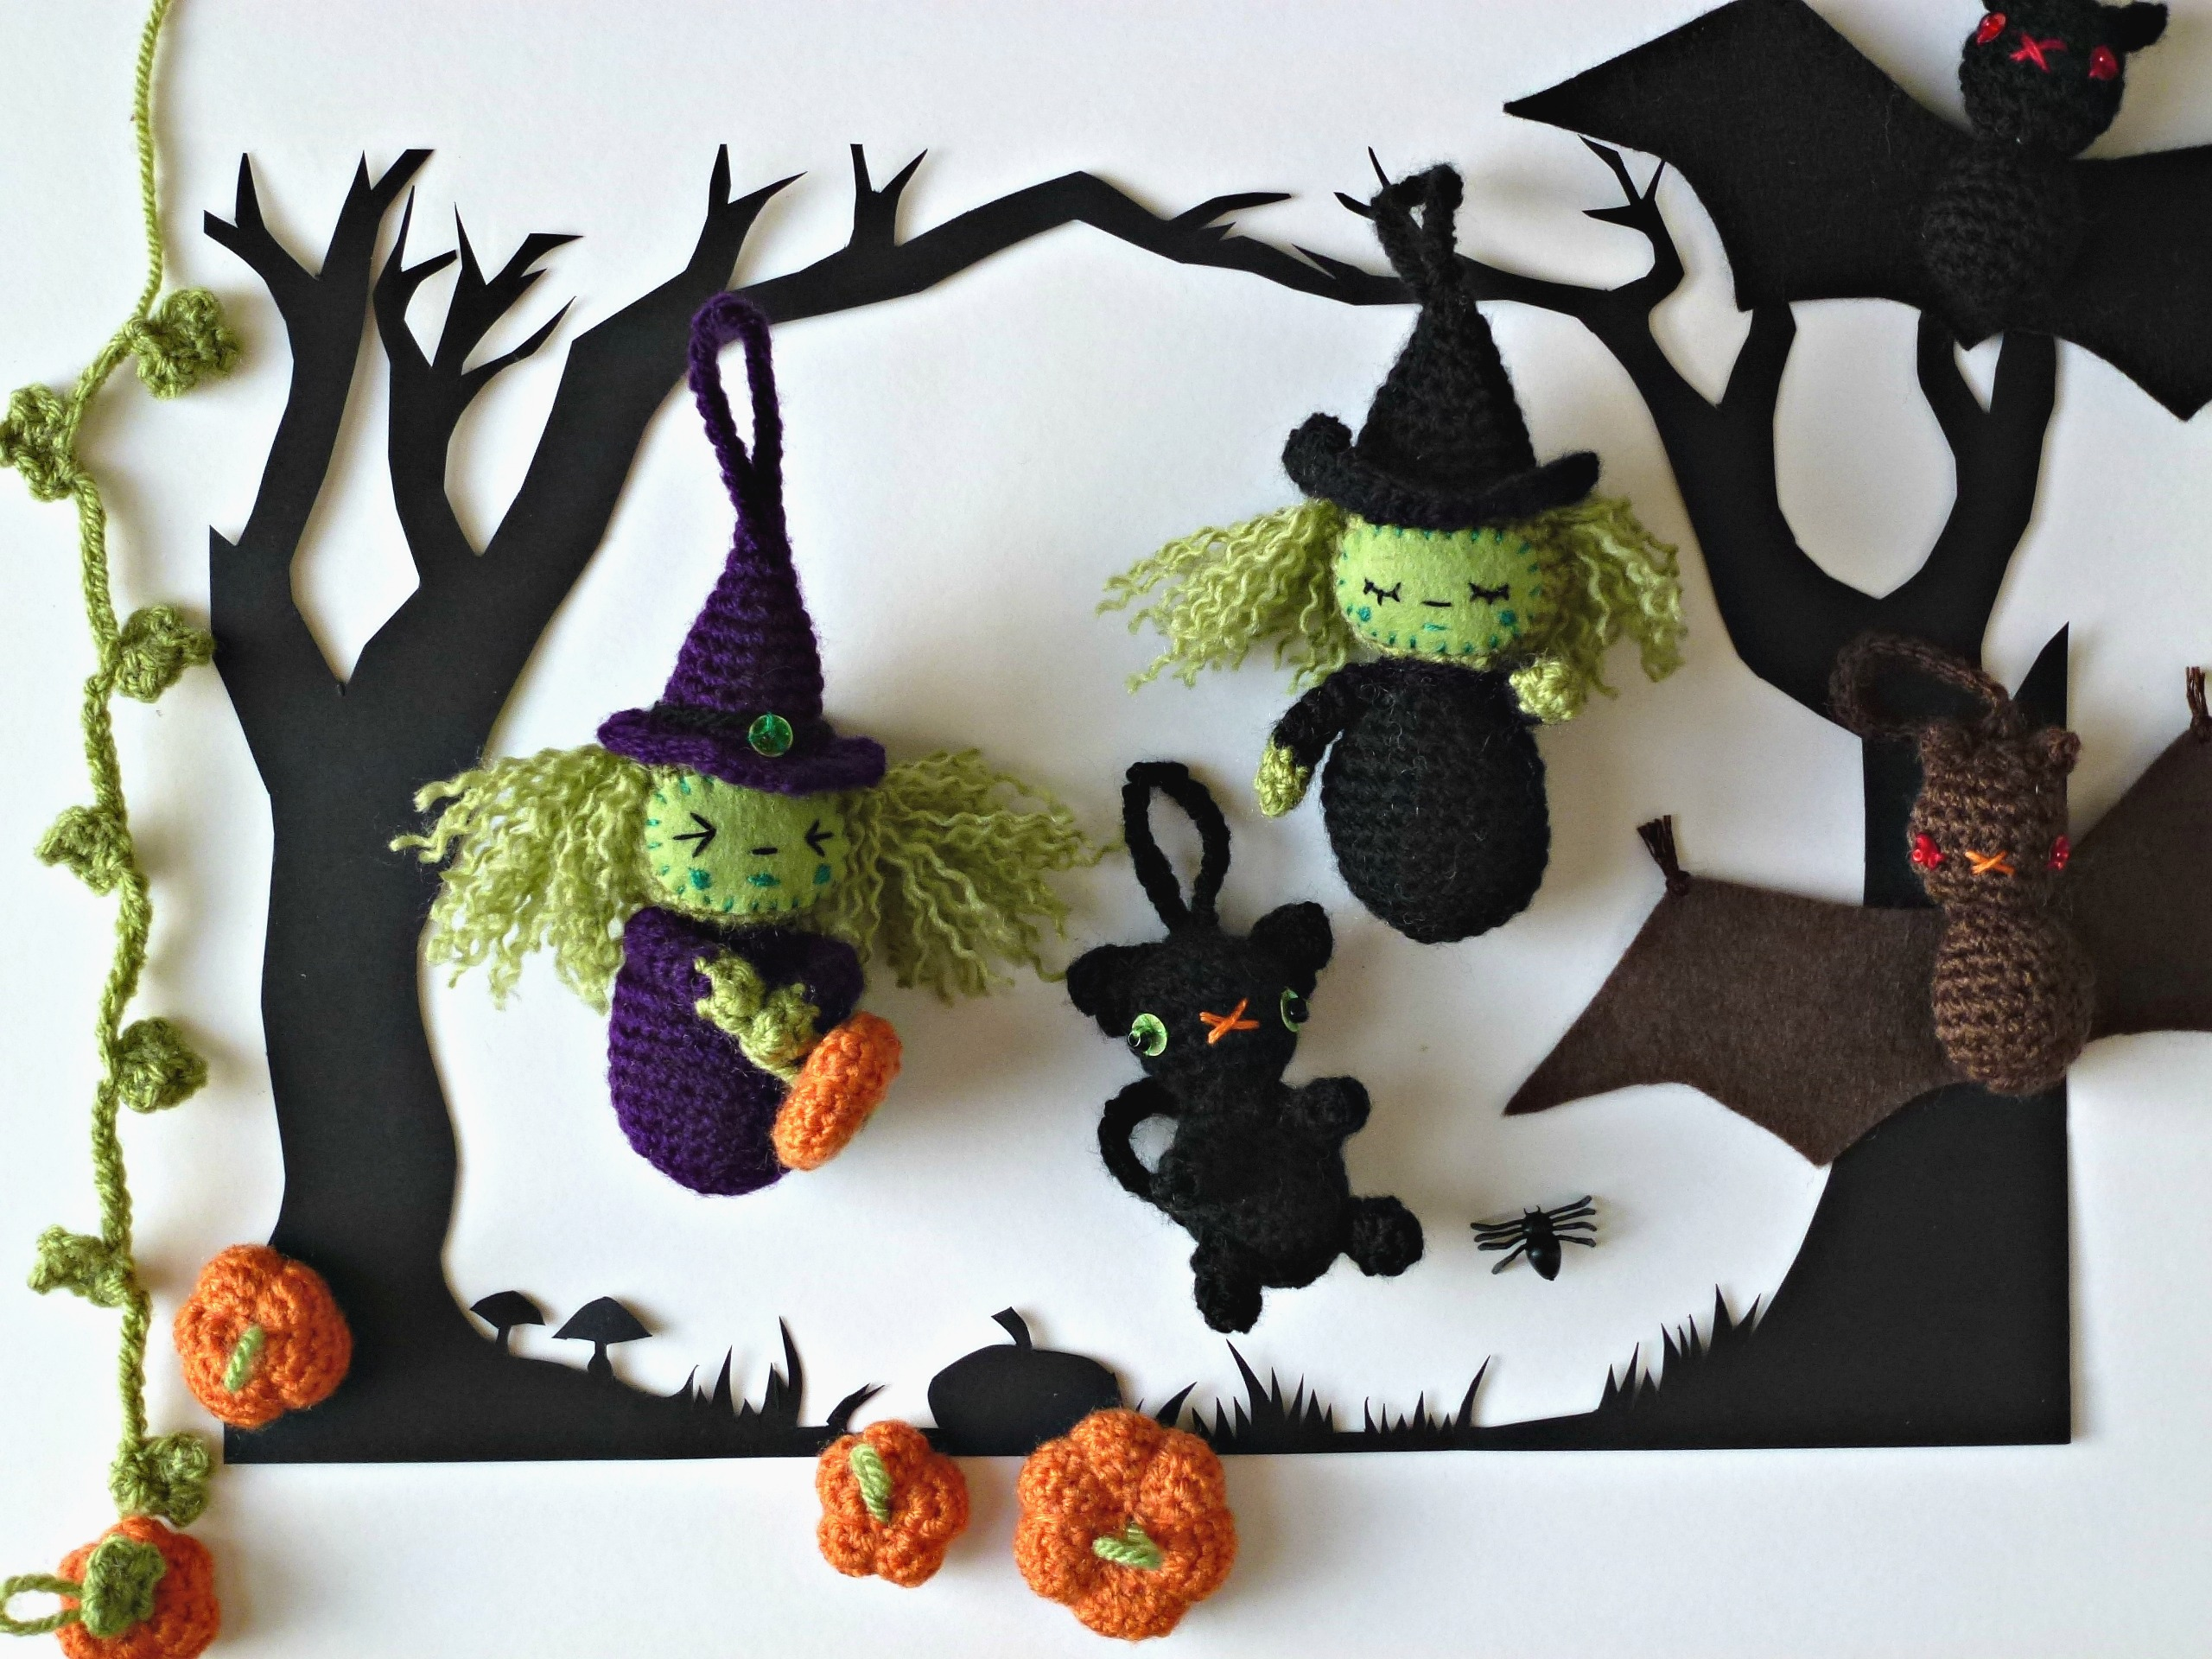 Amigurumi Halloween Free : Getting ready for hallowe'en amigurumi patterns aplenty! u2013 zeens